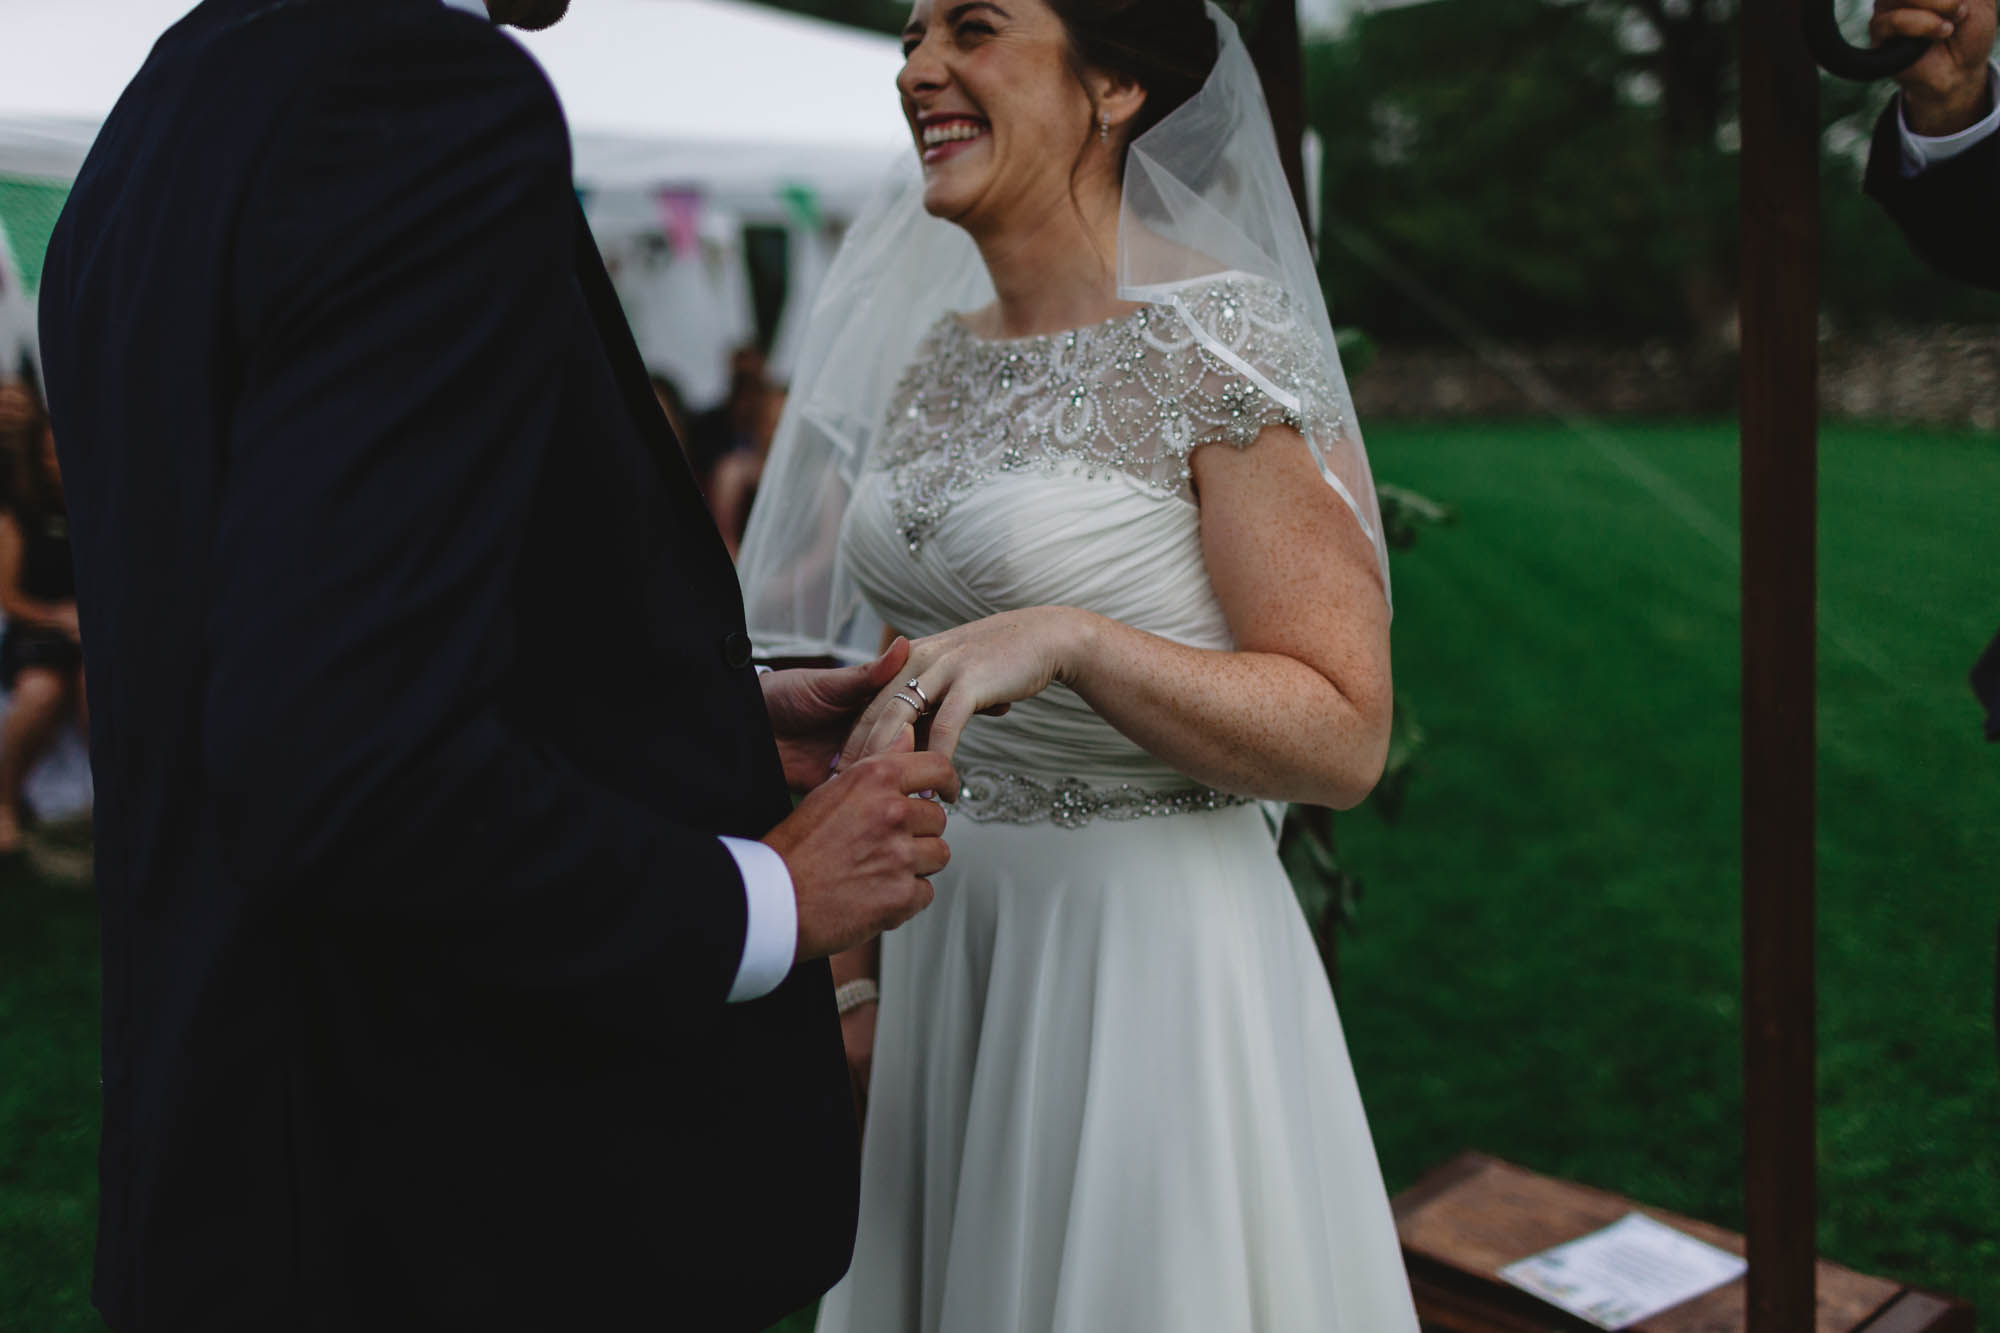 Photography from a North Yorkshire Wedding, Leeds, romantic, outdoor ceremony, DIY wedding, candid, relaxed fun photographer Huddersfield